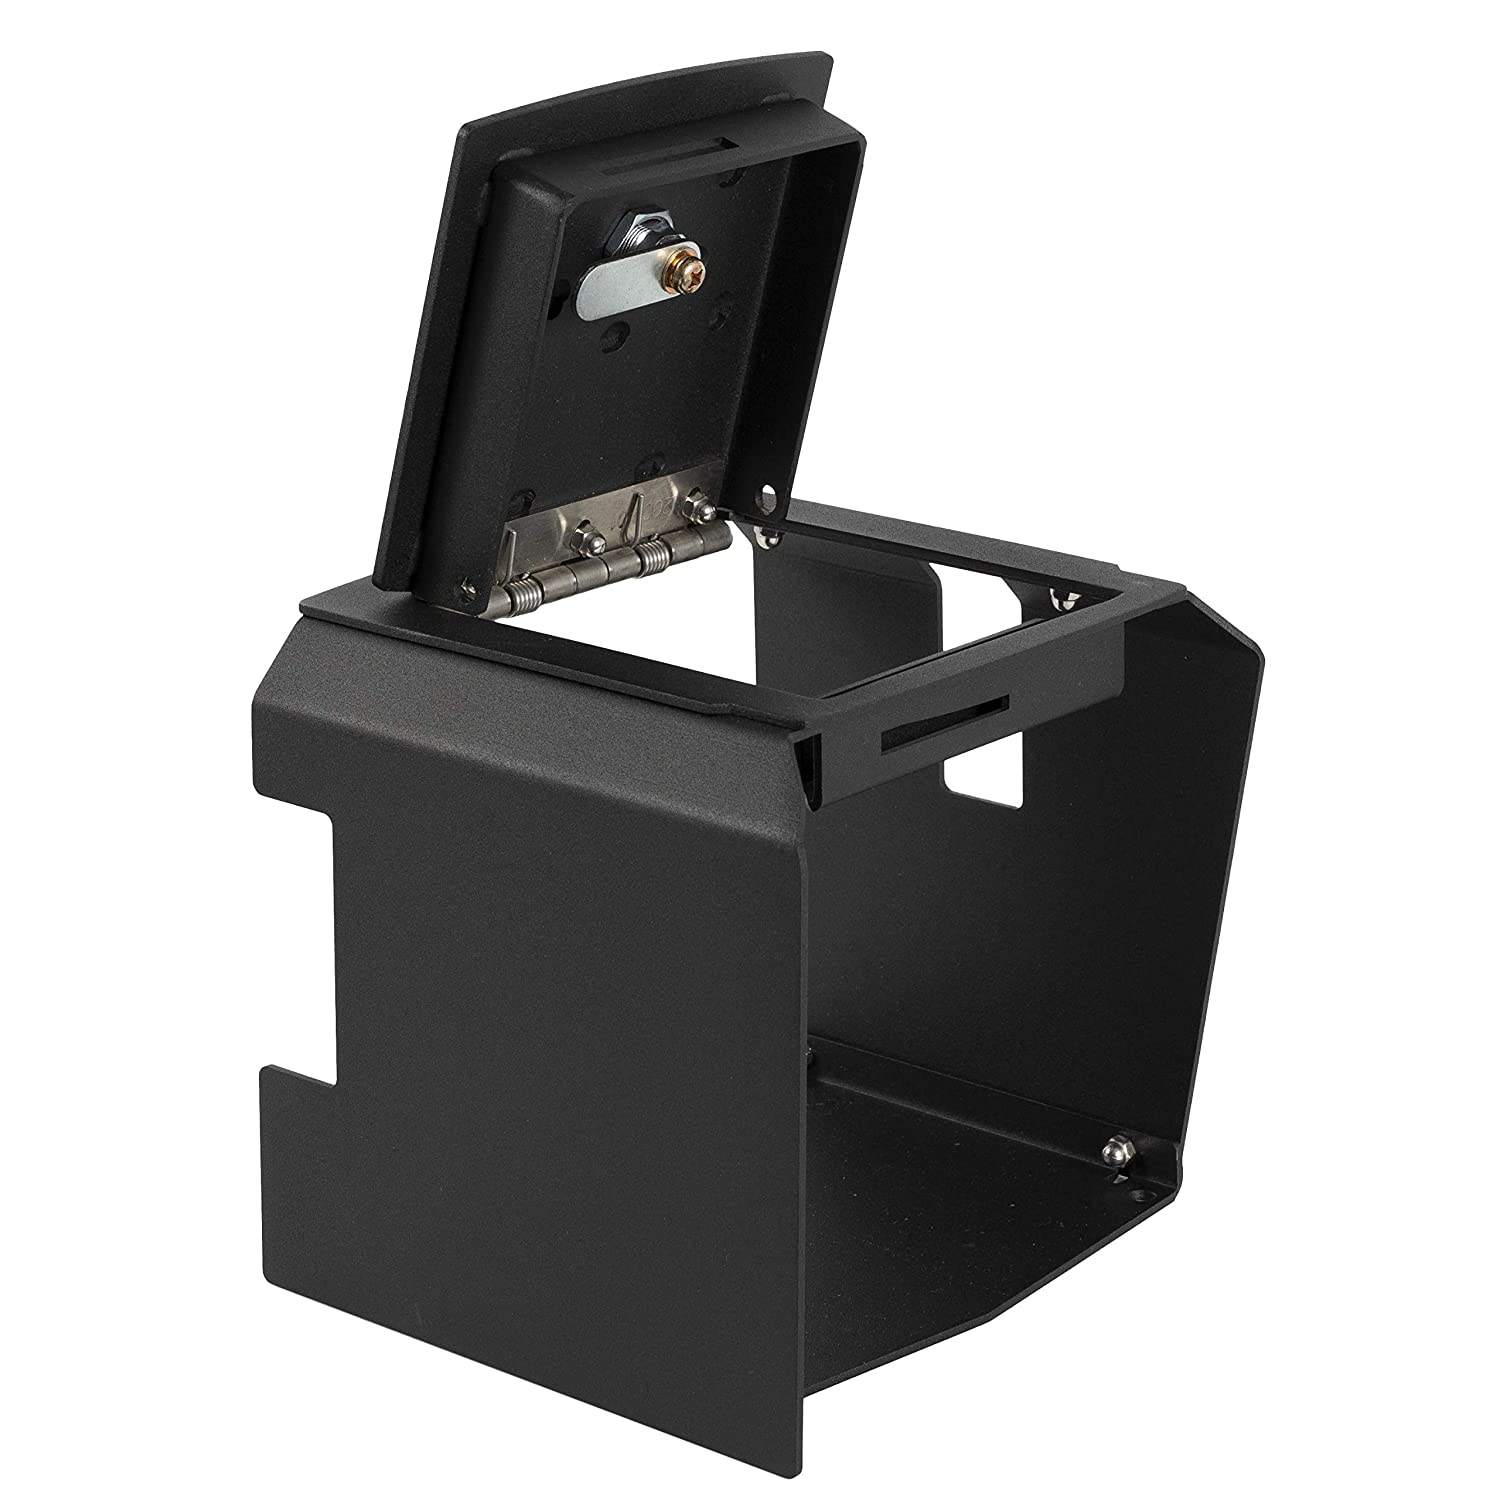 LD2070EX Locker Down Extreme Console Car Safe Compatible With 2018-2019 Jeep Wrangler JL and 2020 Gladiator Model Keep Personal Items Secure and Organized in Car Includes Rubicon